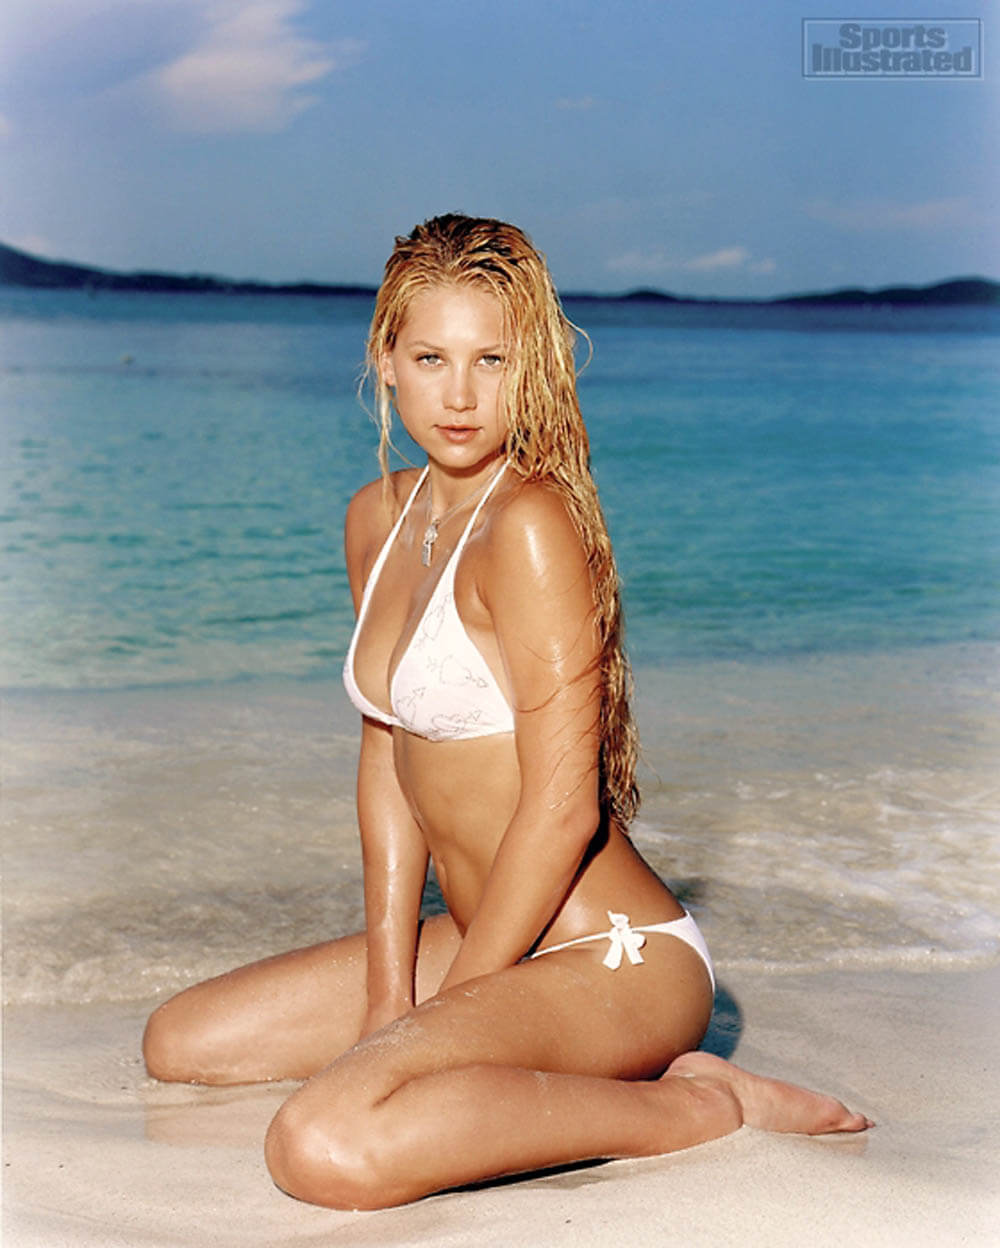 Anna Kournikova hot sea beach scene